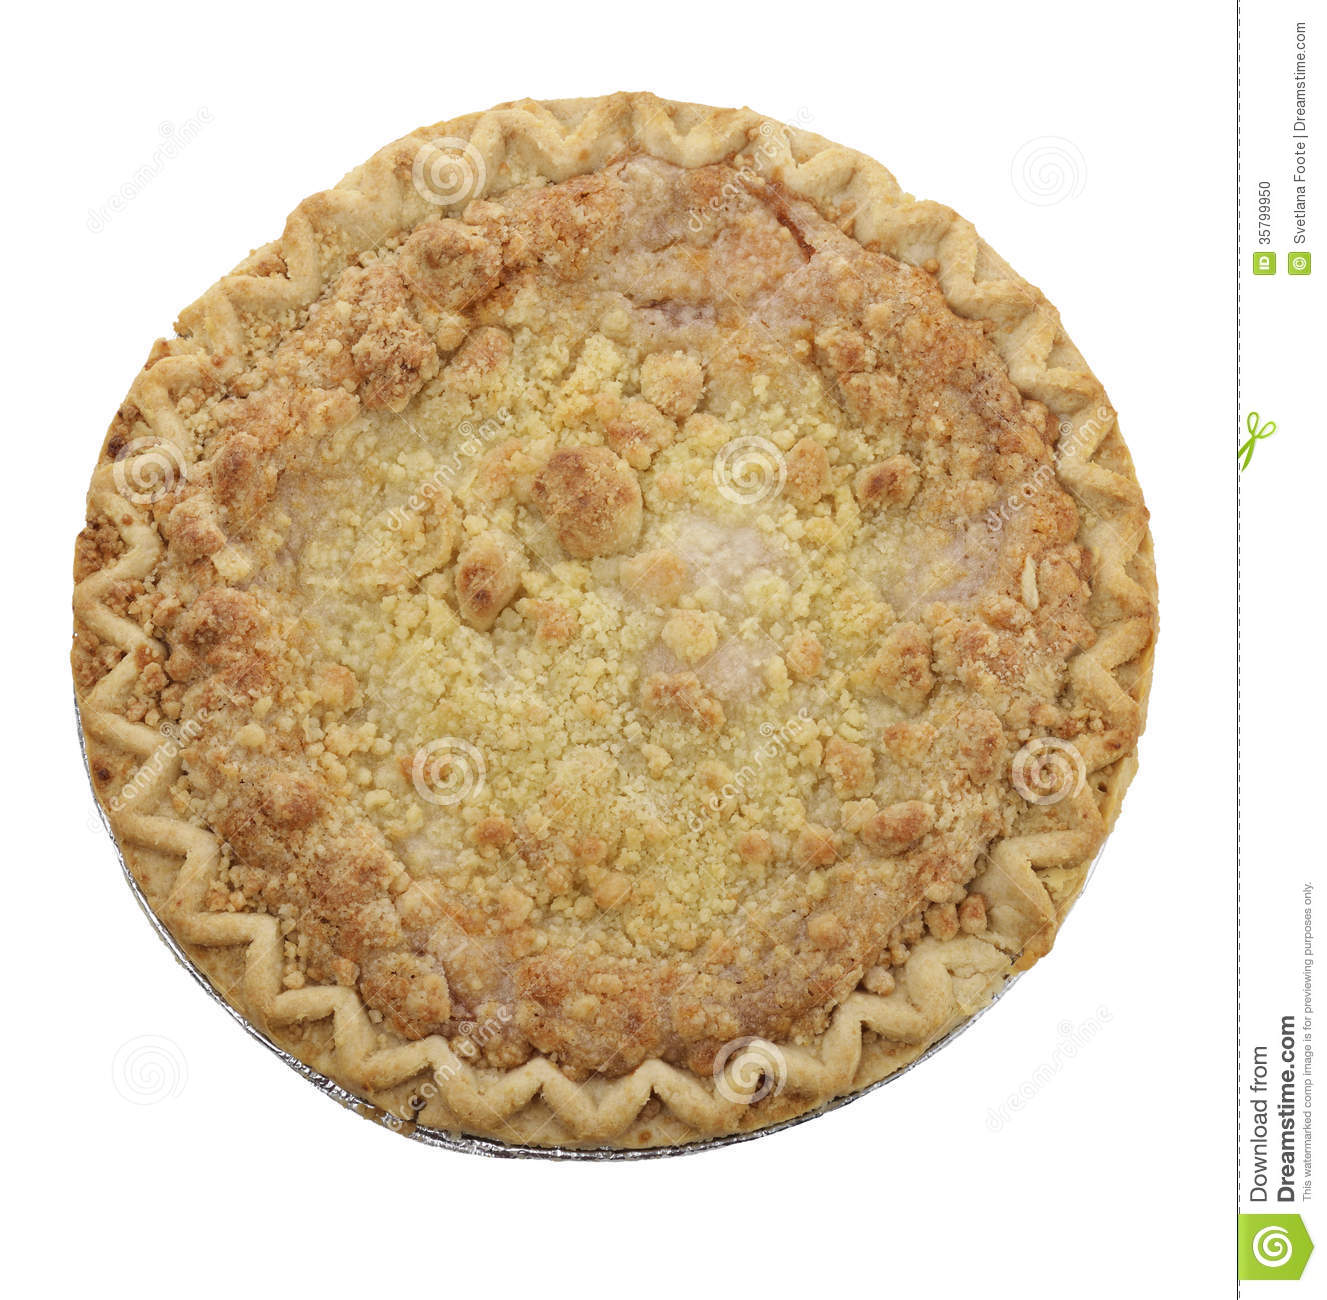 Apple Crumb Pie Stock Photo - Image: 35799950